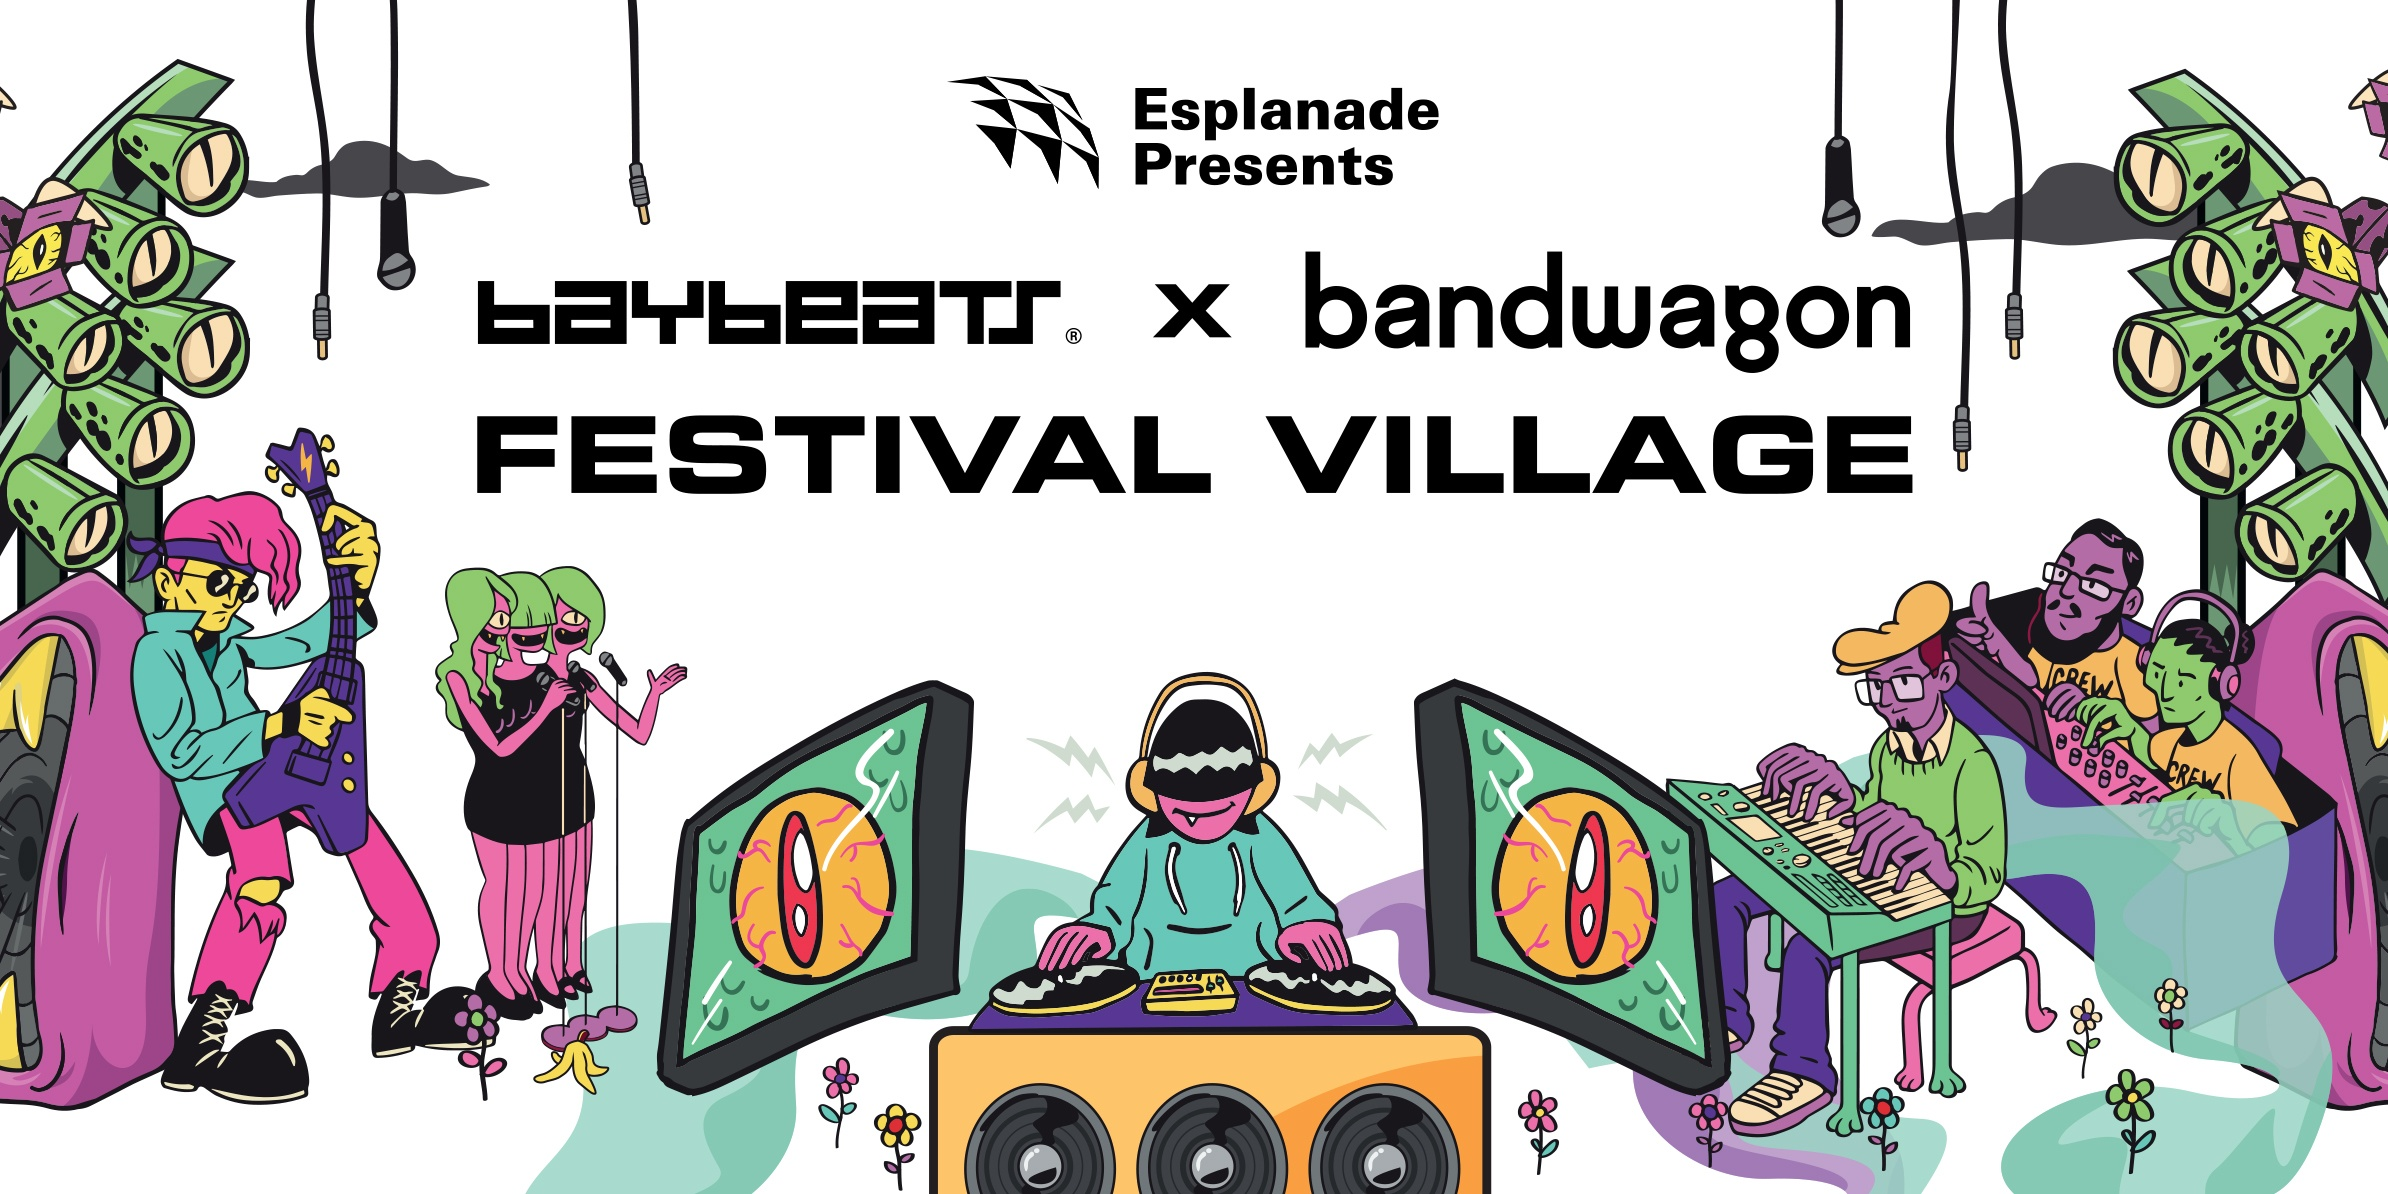 All you need to know about the Baybeats x Bandwagon Festival Village